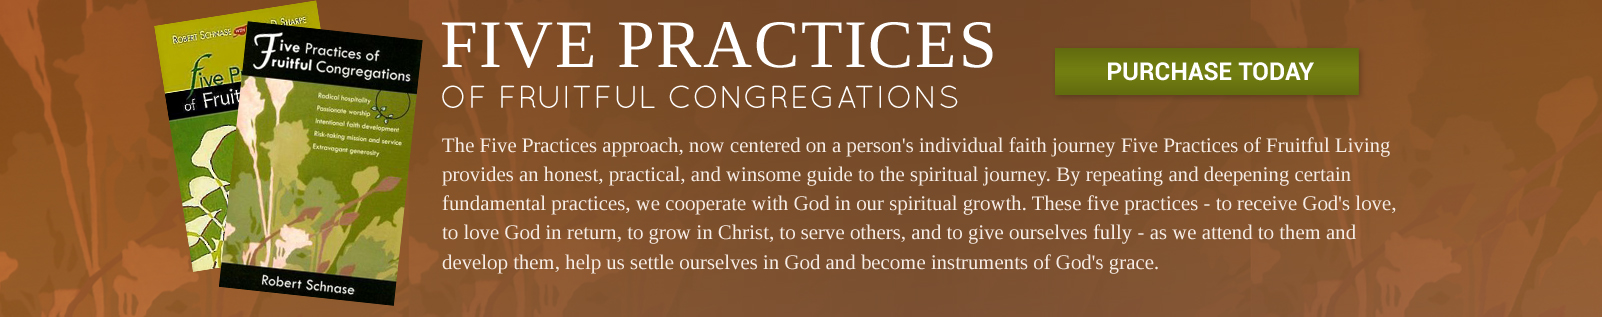 Five Practices of Fruitful Congregations - NC Conference